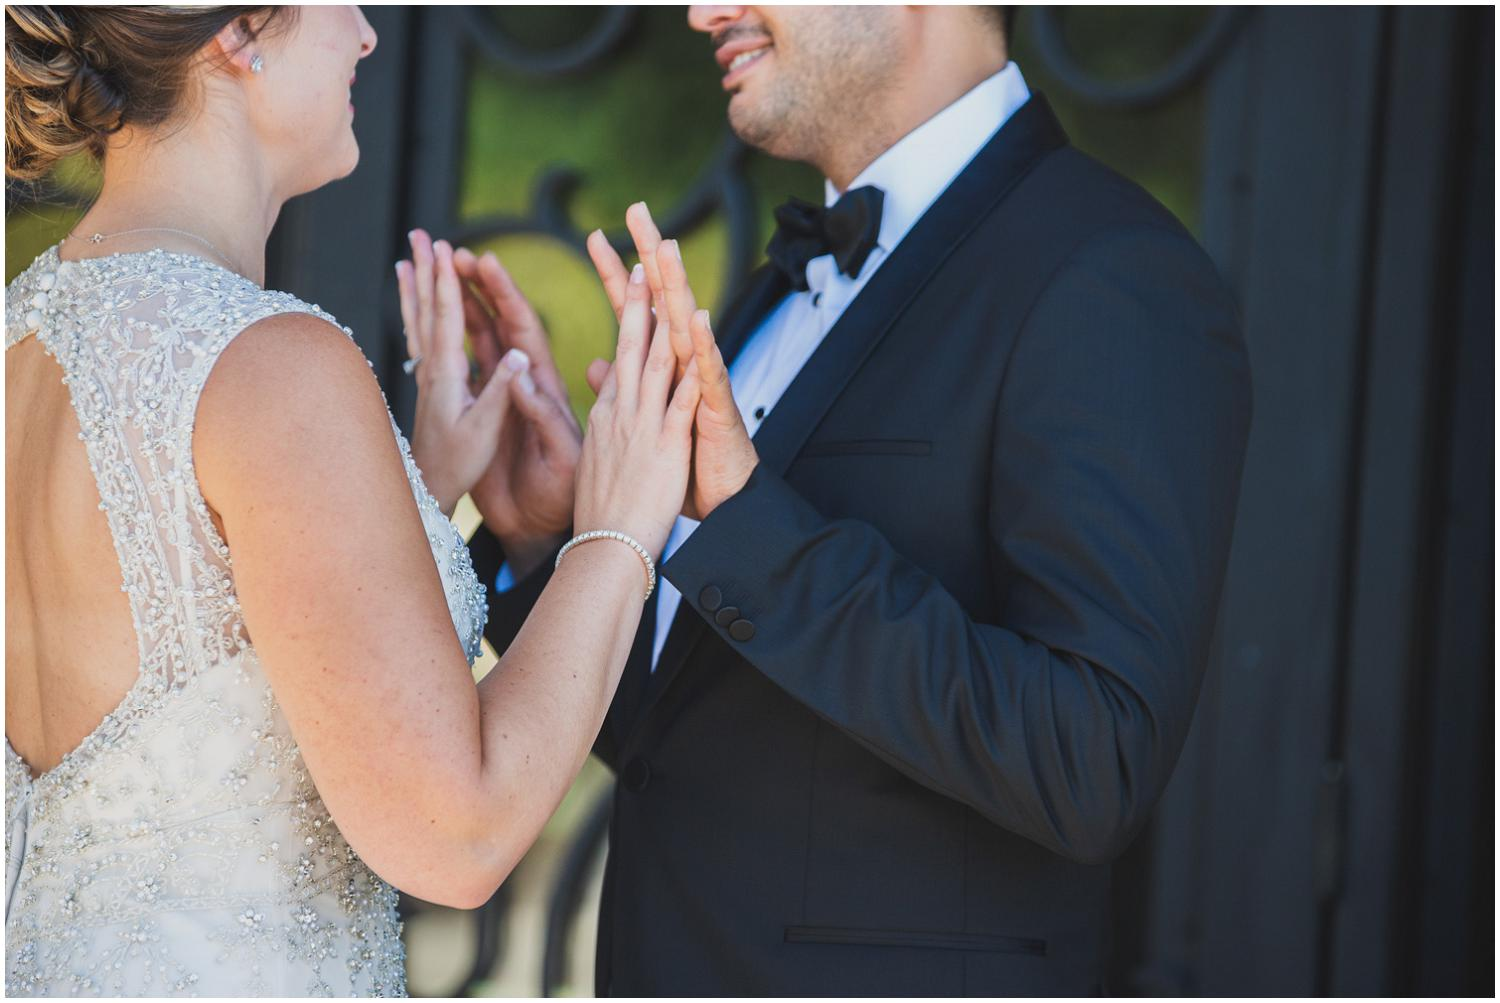 bride and groom gently touch hands after first look